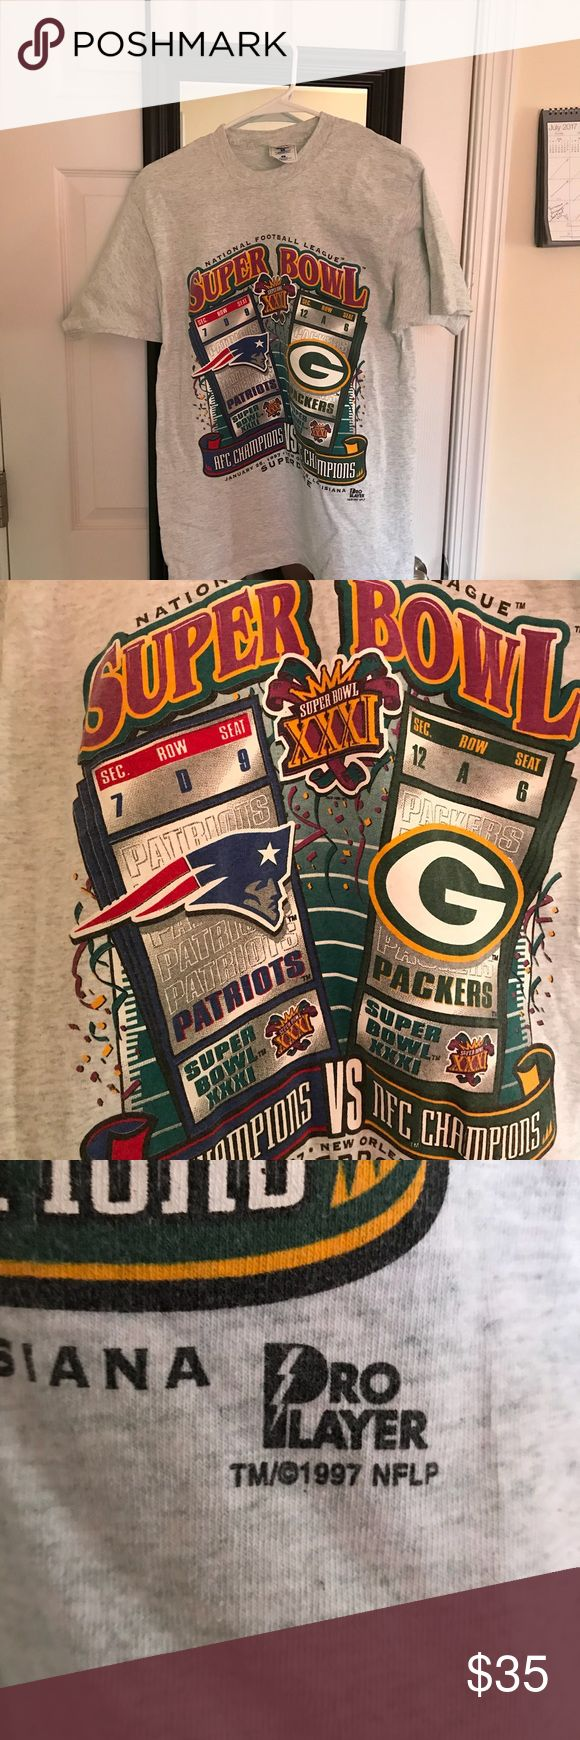 VINTAGE Super Bowl XXXI Packers/Patriots t-shirt EXCELLENT CONDITION T-SHIRT FROM SUPER BOWL 31! Perfect for any collector. Shirts Tees - Short Sleeve